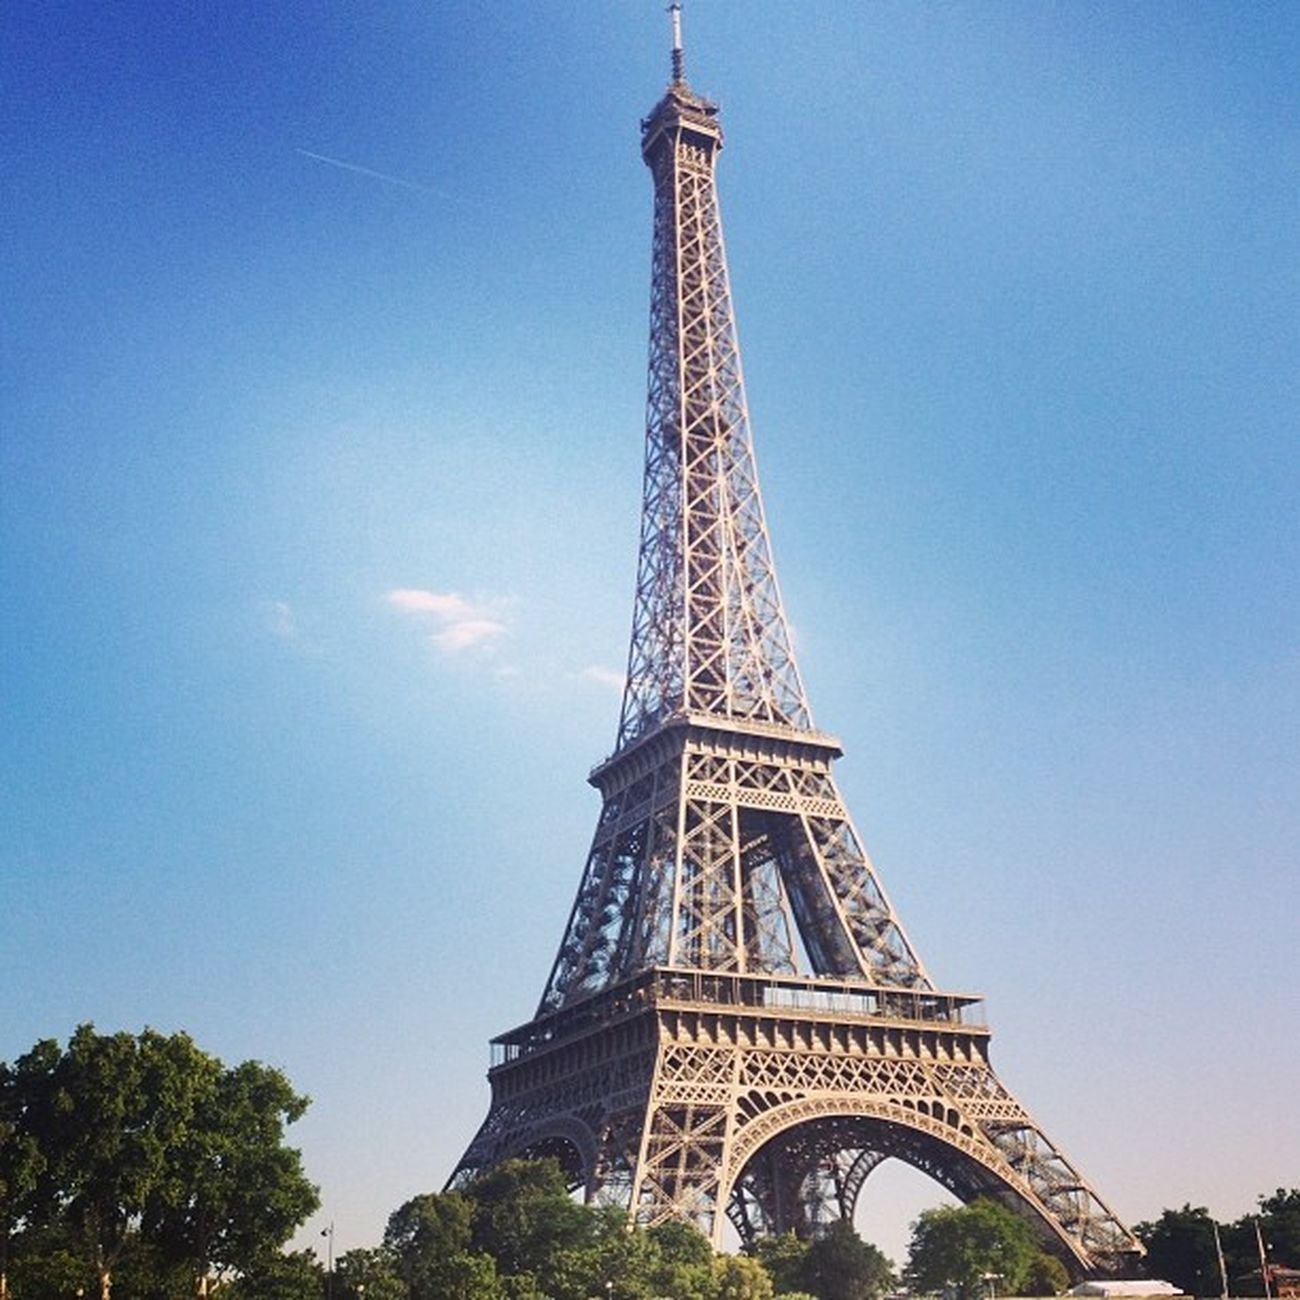 Some guy came from the tower last night shouting 'she's engaged, she's engaged' to his girlfriend Goodchoice Paris